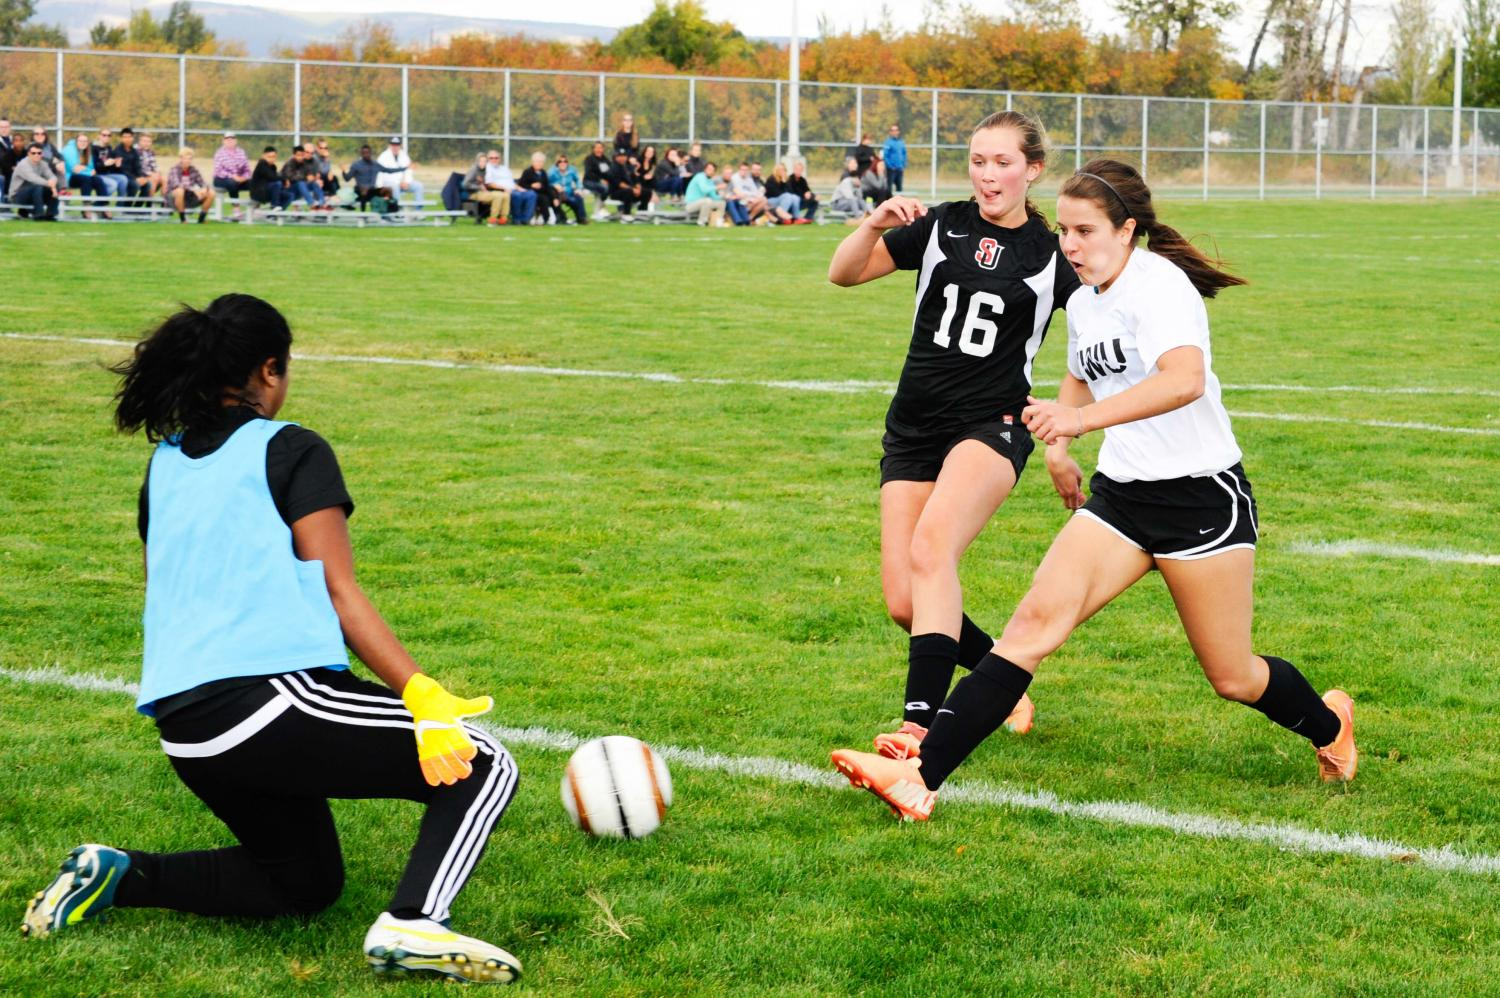 Junior forward Sally Vlas trying to get the ball past the Seattle University goalkeeper during a matchup in the fall.